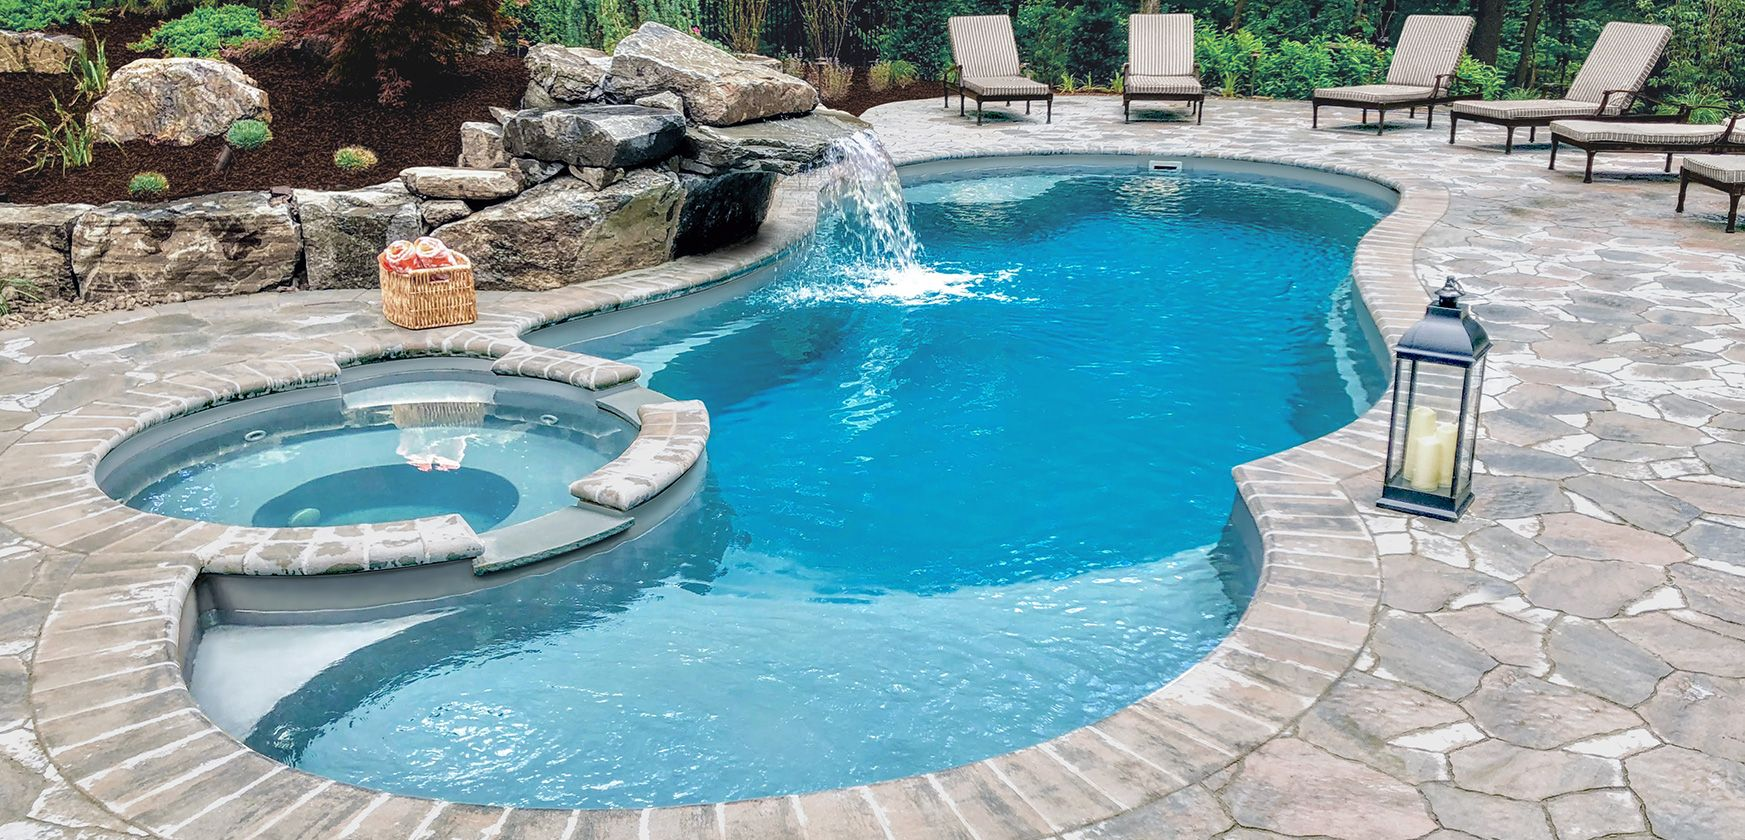 The Allure fiberglass pool with tanning ledge and spa by ...